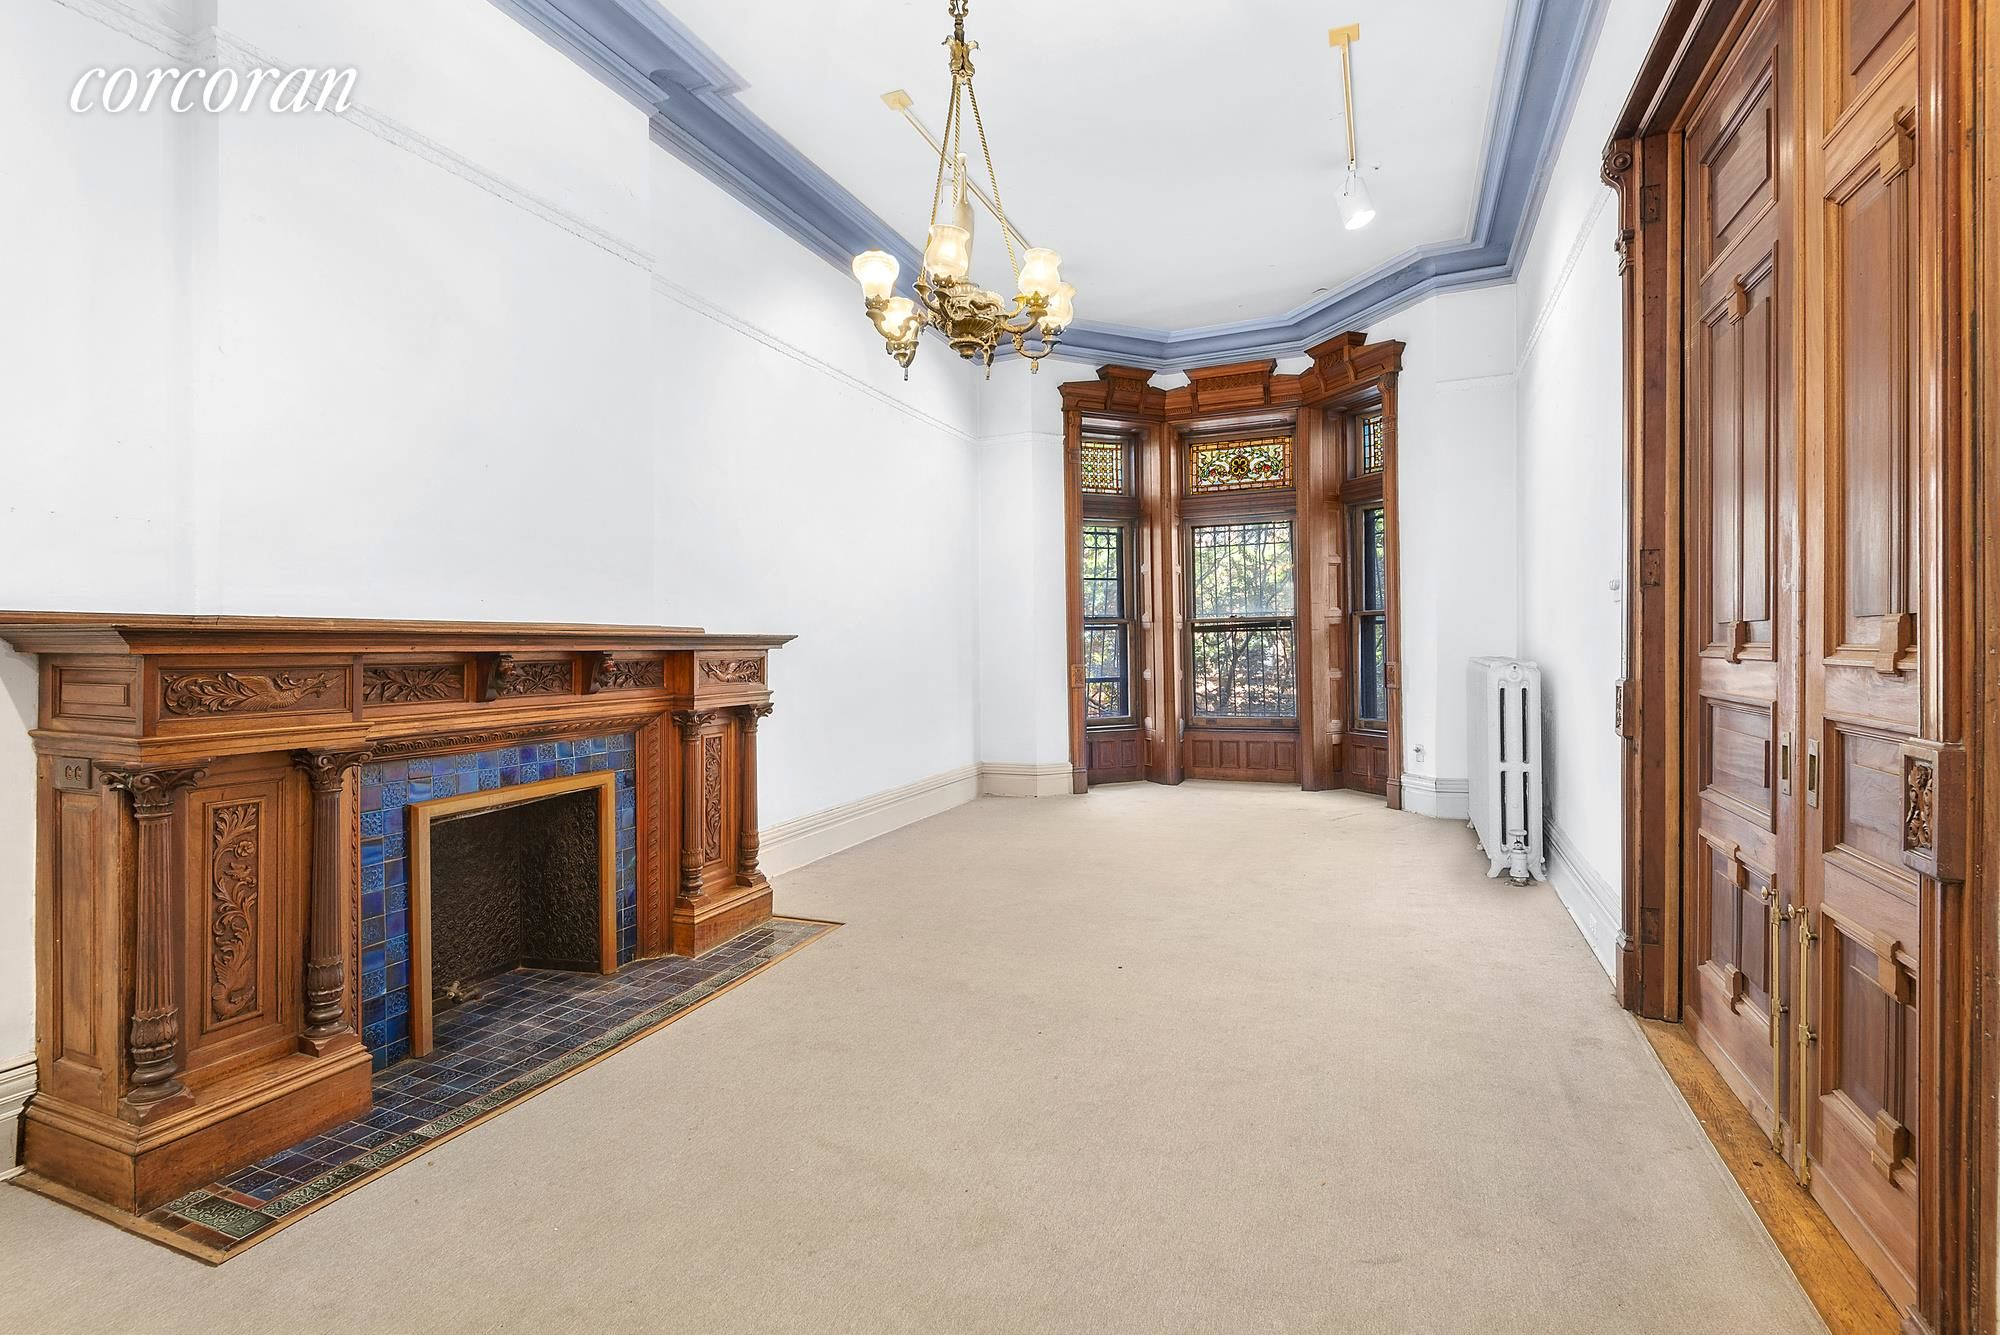 916 President St Photo 5 - NYC-Real-Estate-675384